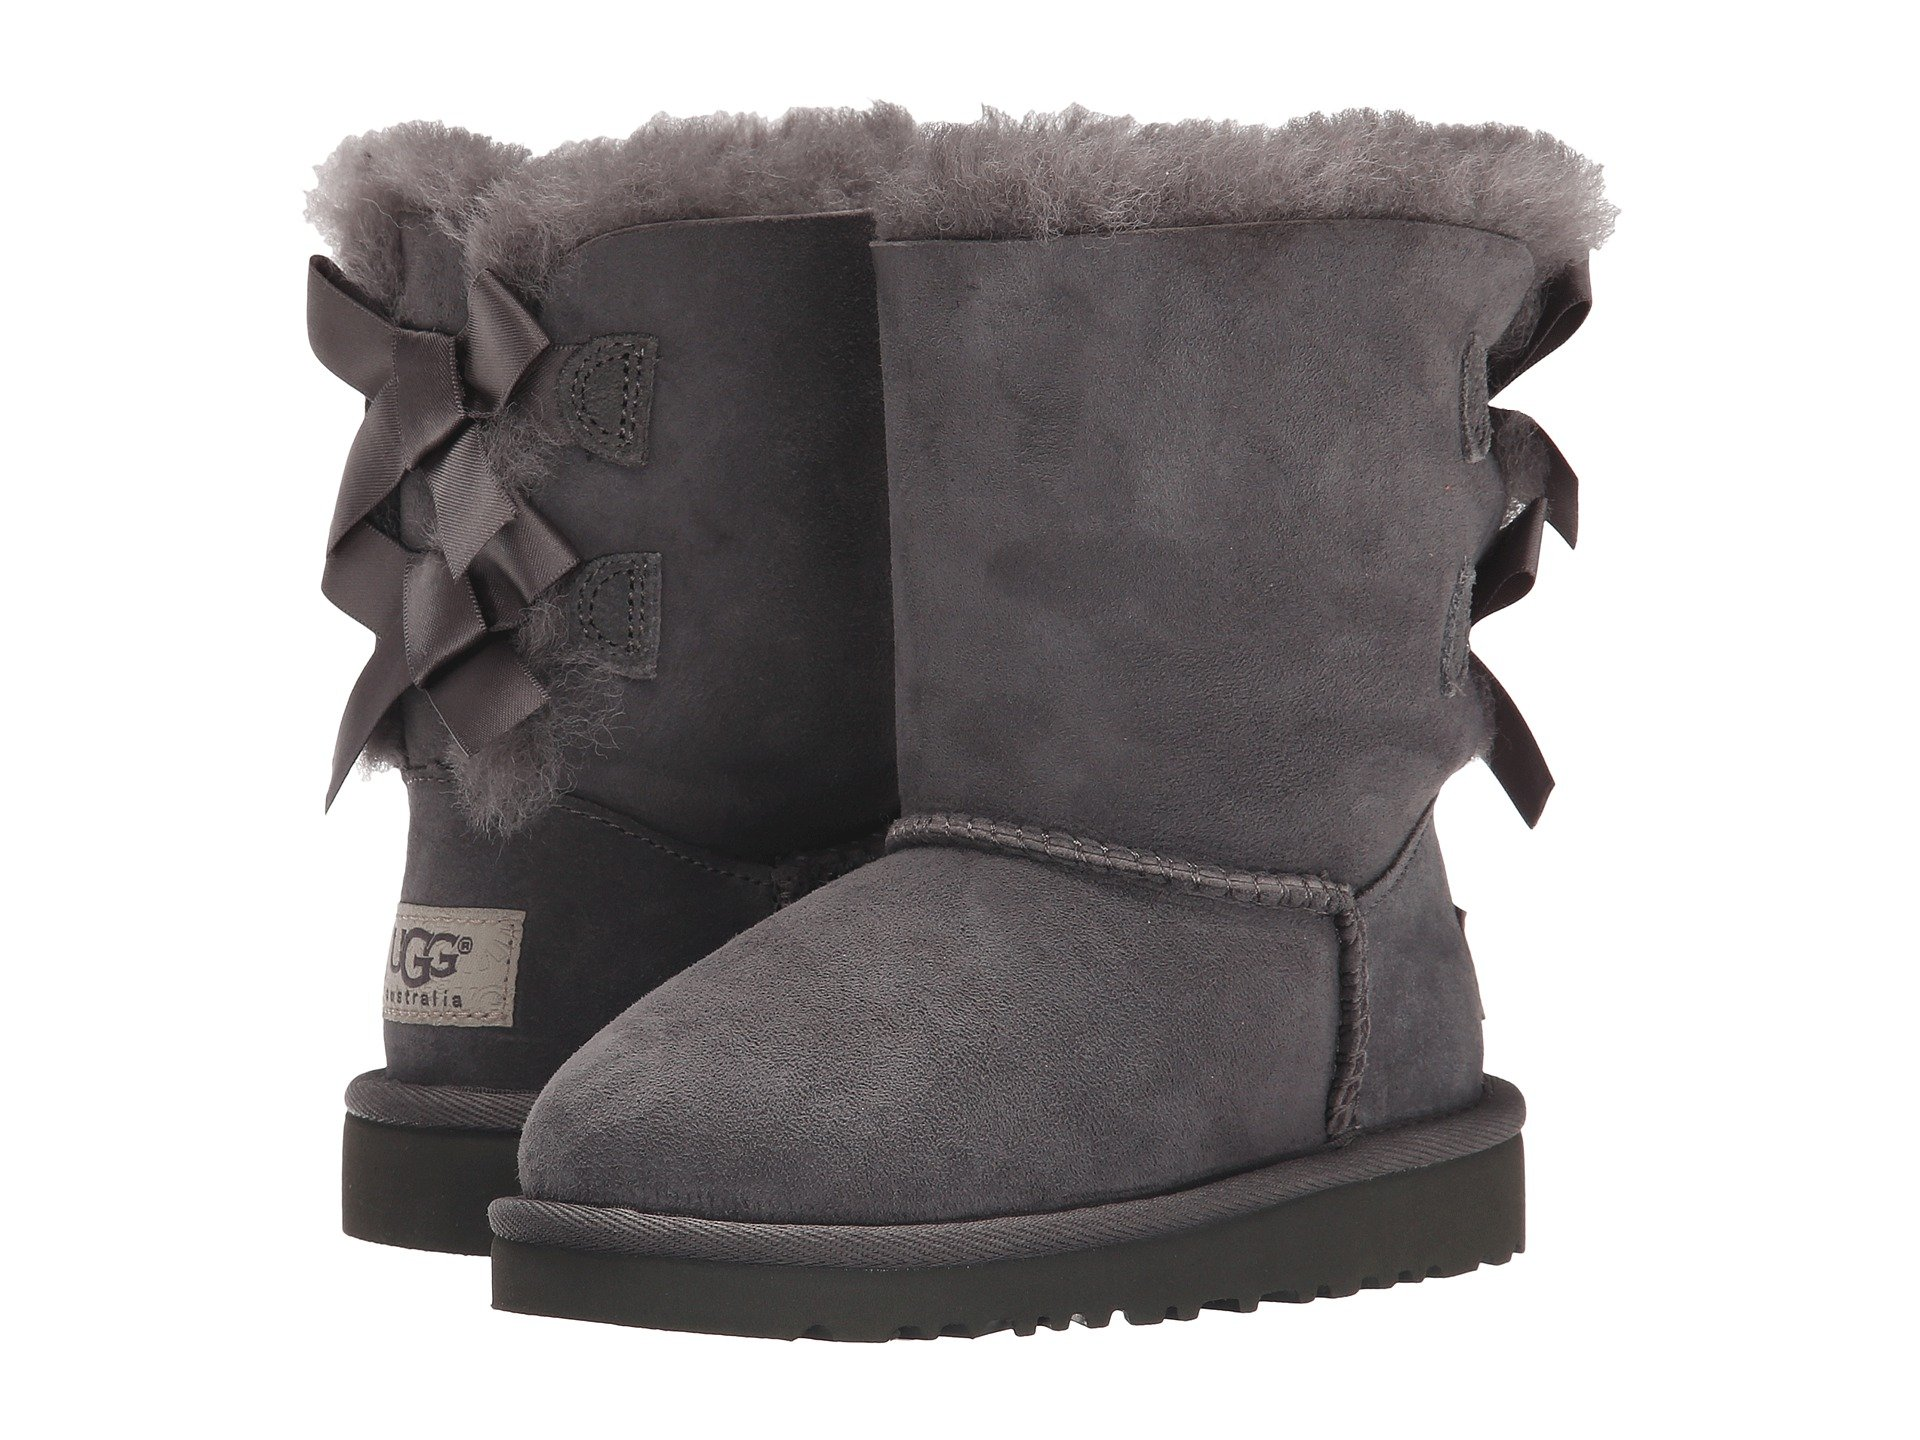 Buy UGG Australia Women's Classic Tall and other Shoes at rahipclr.ga Our wide selection is eligible for free shipping and free returns.